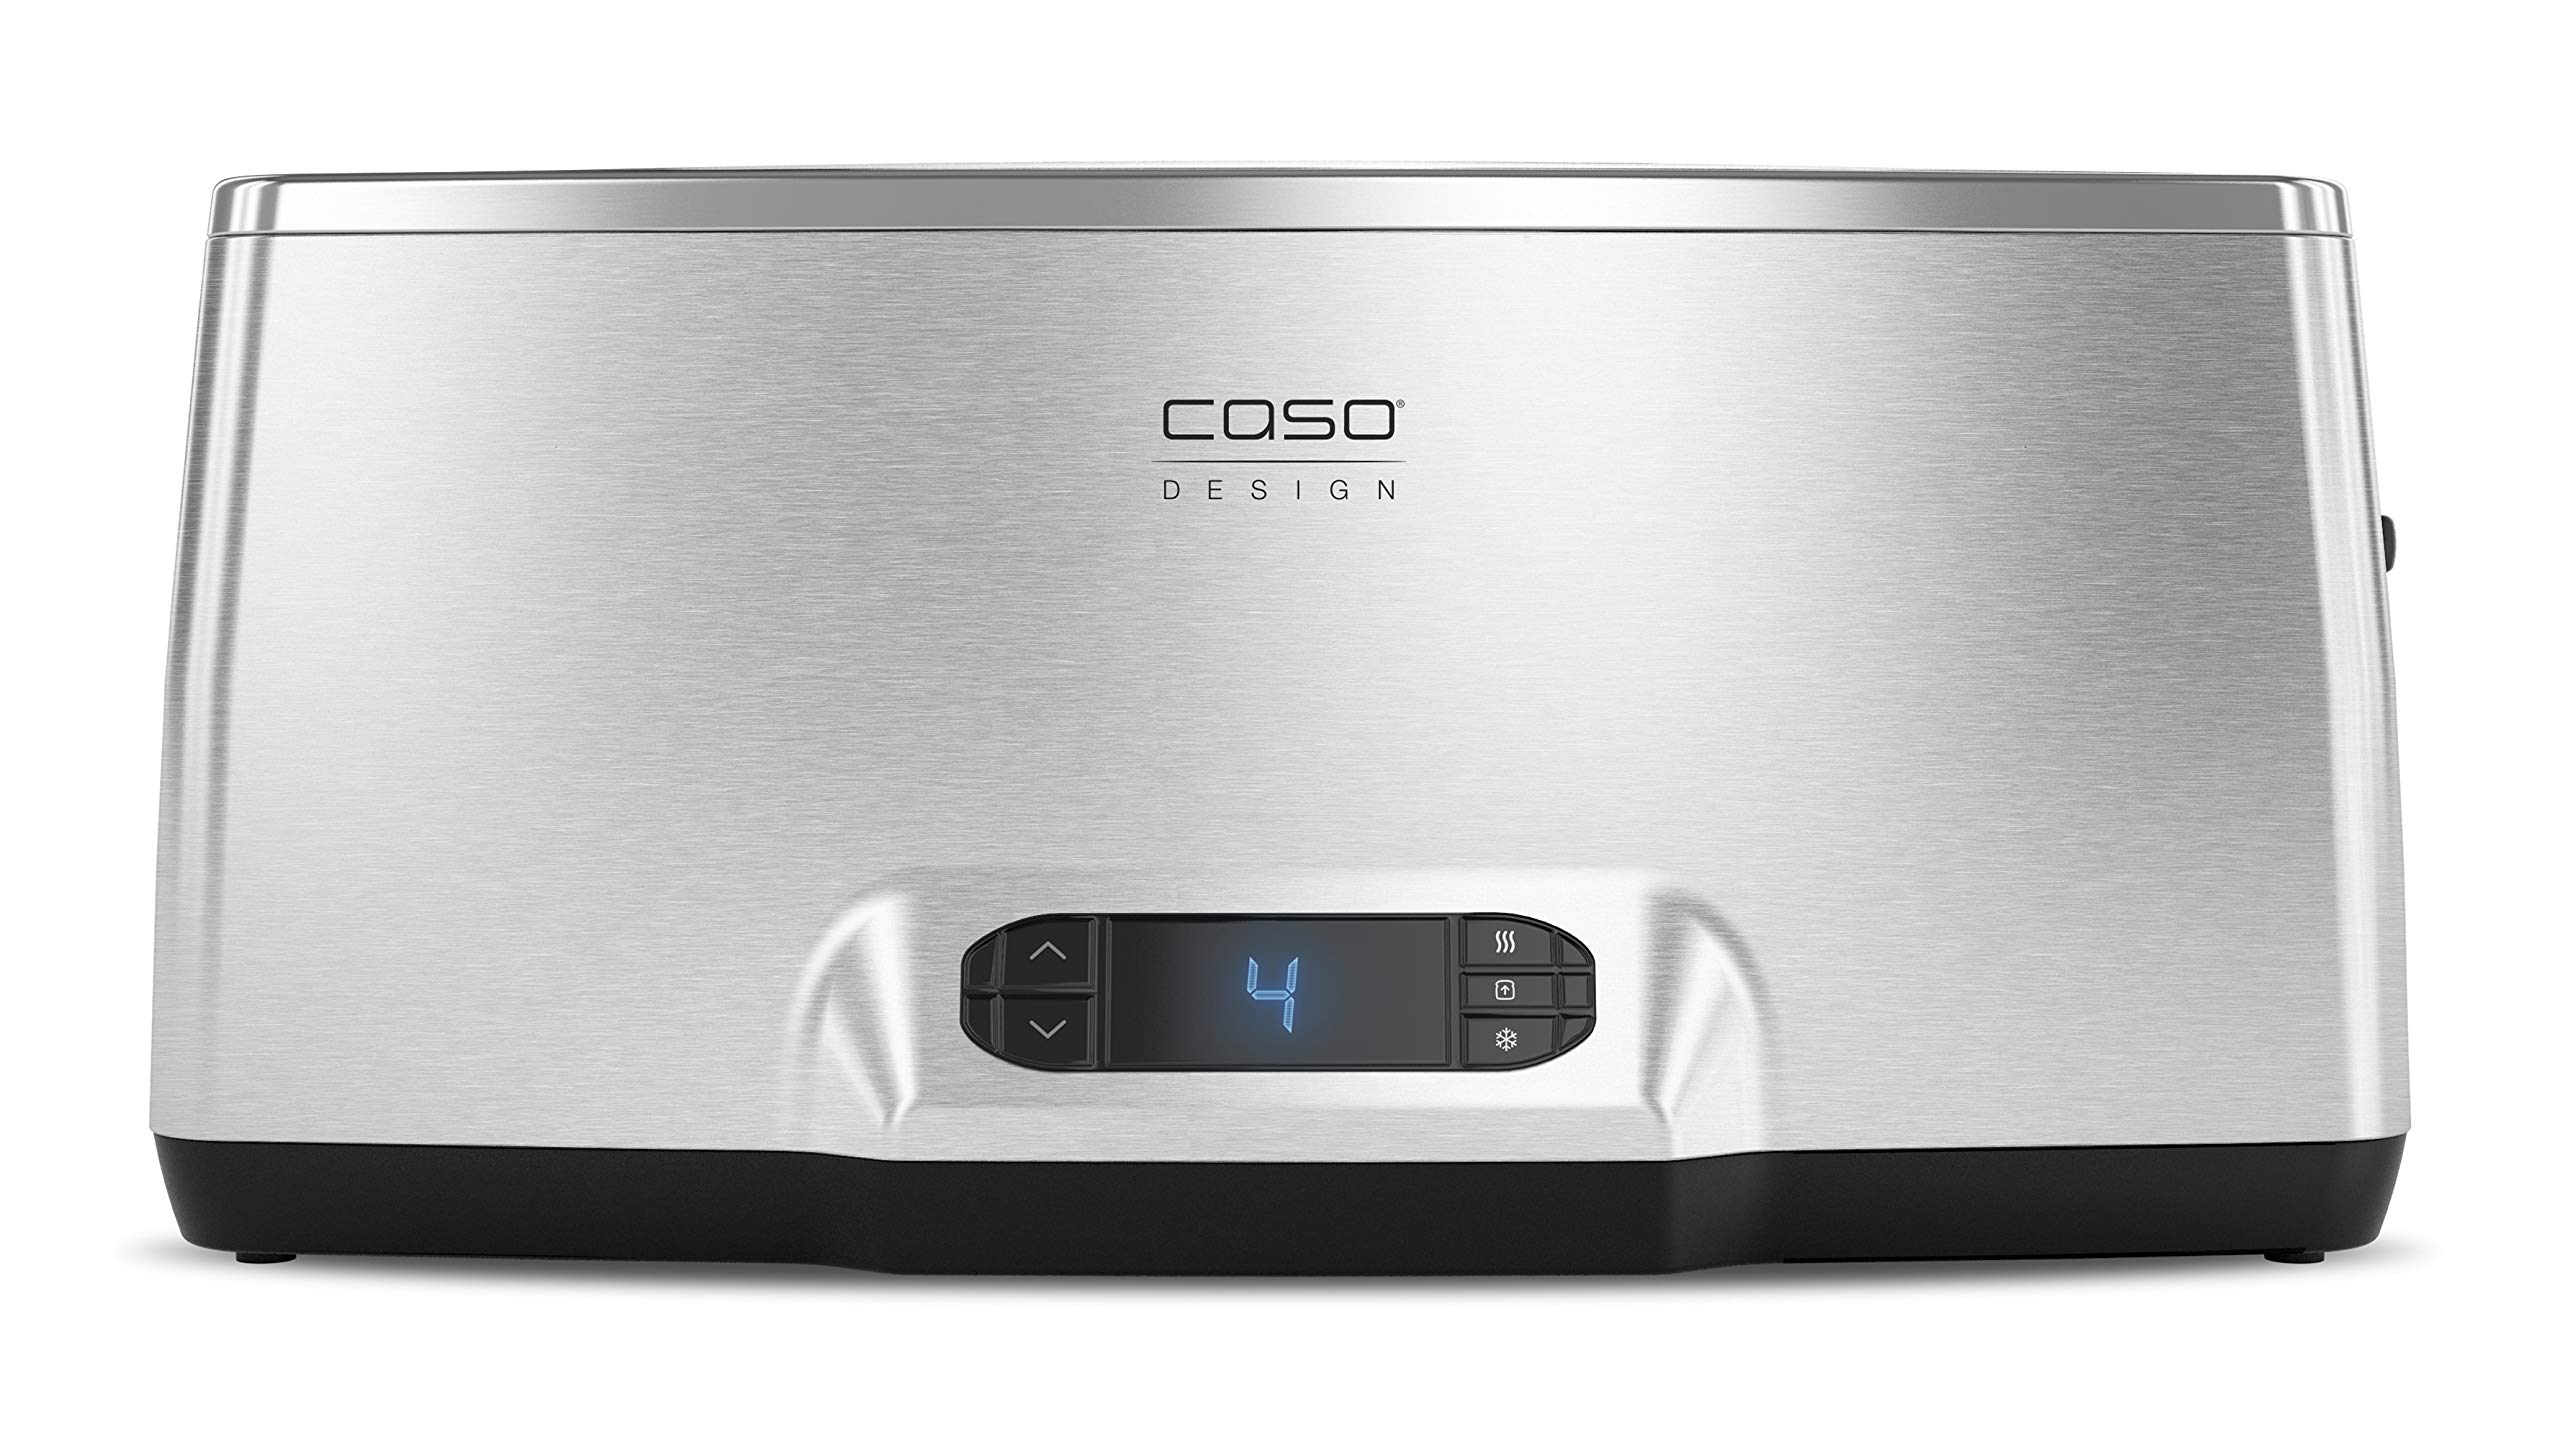 Caso Design INOX.4 Four-Slice Toaster with Wire Warming Basket Attachment, 4, Stainless by Caso Design (Image #8)